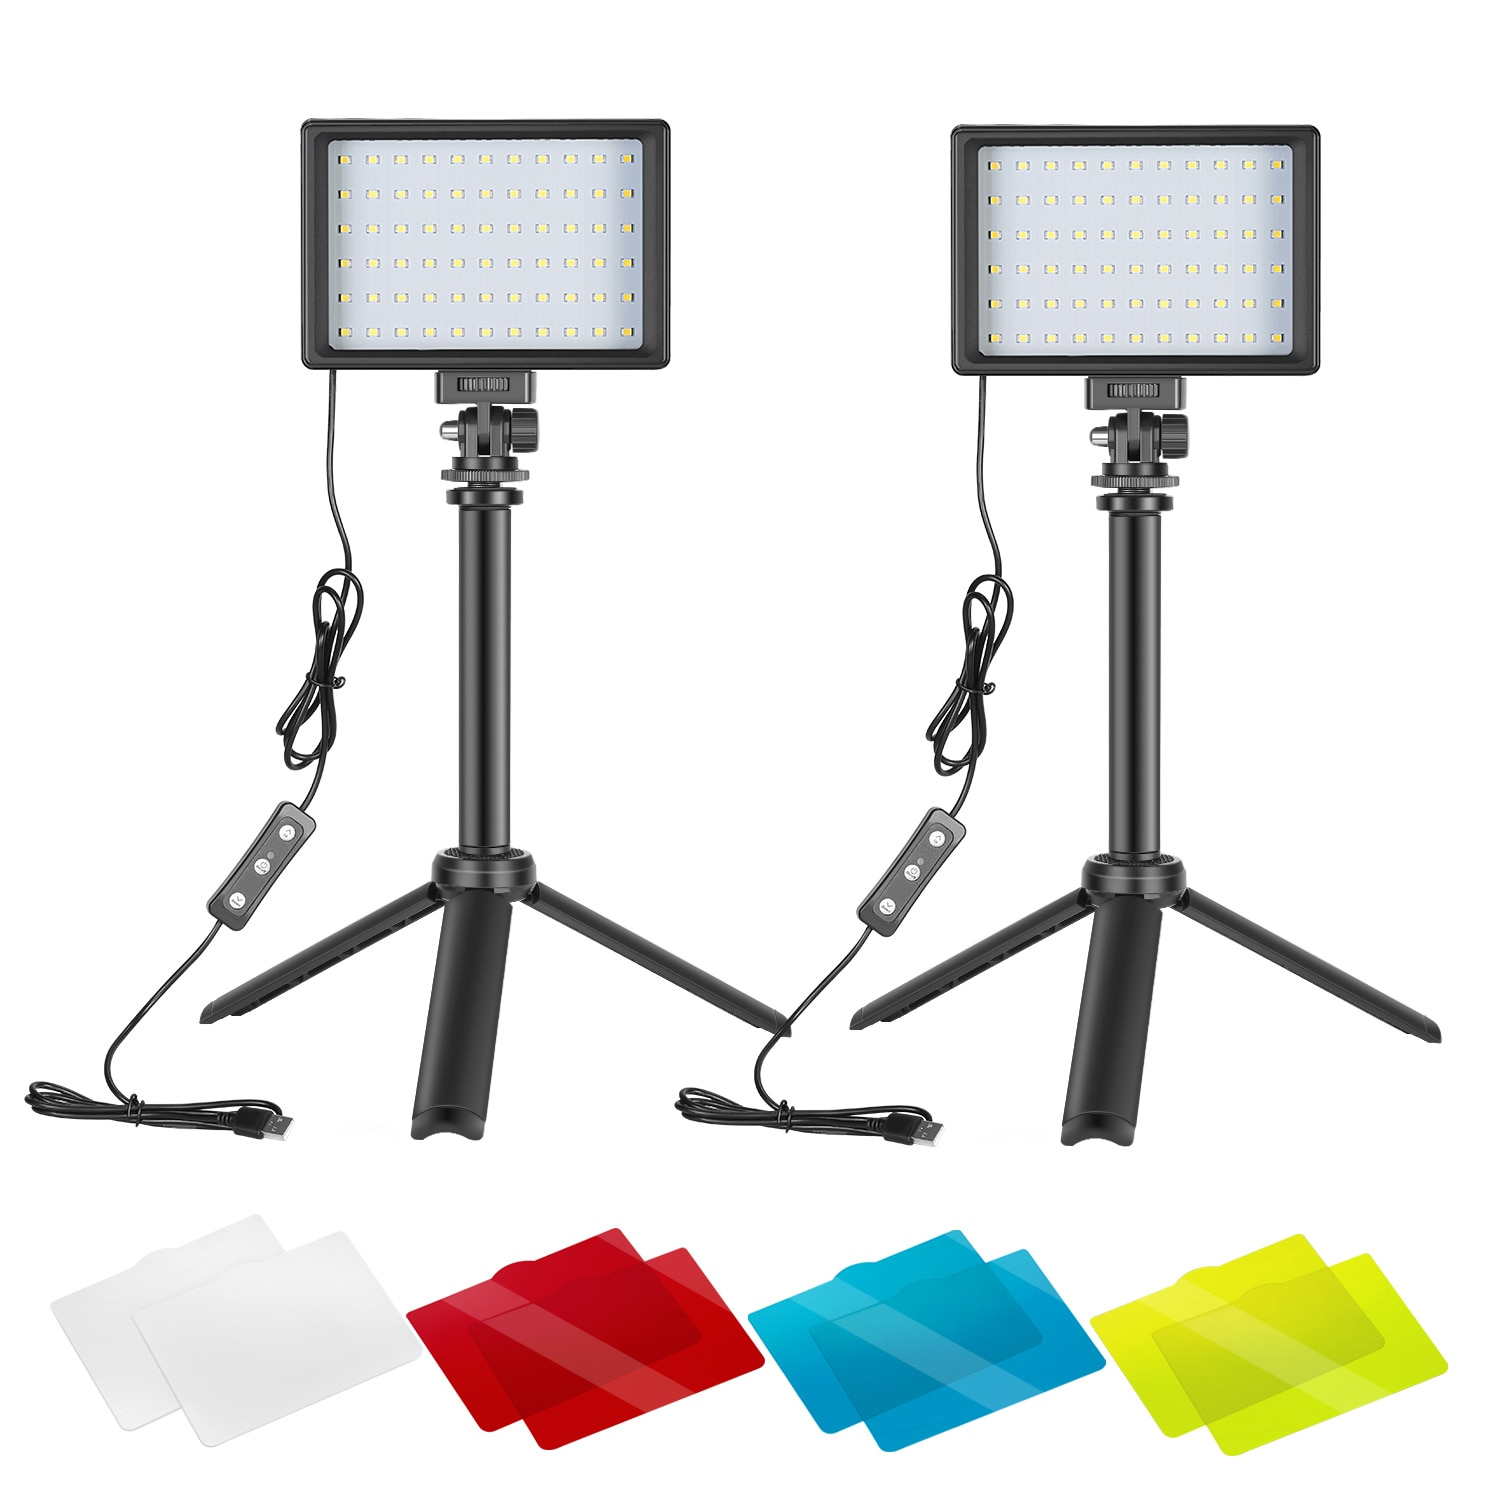 Neewer 2 Packs Portable Photography Lighting Kit Dimmable 5600K USB 66 LED Video Light with Mini Adjustable Tripod Stand|Photo Studio Accessories| - AliExpress